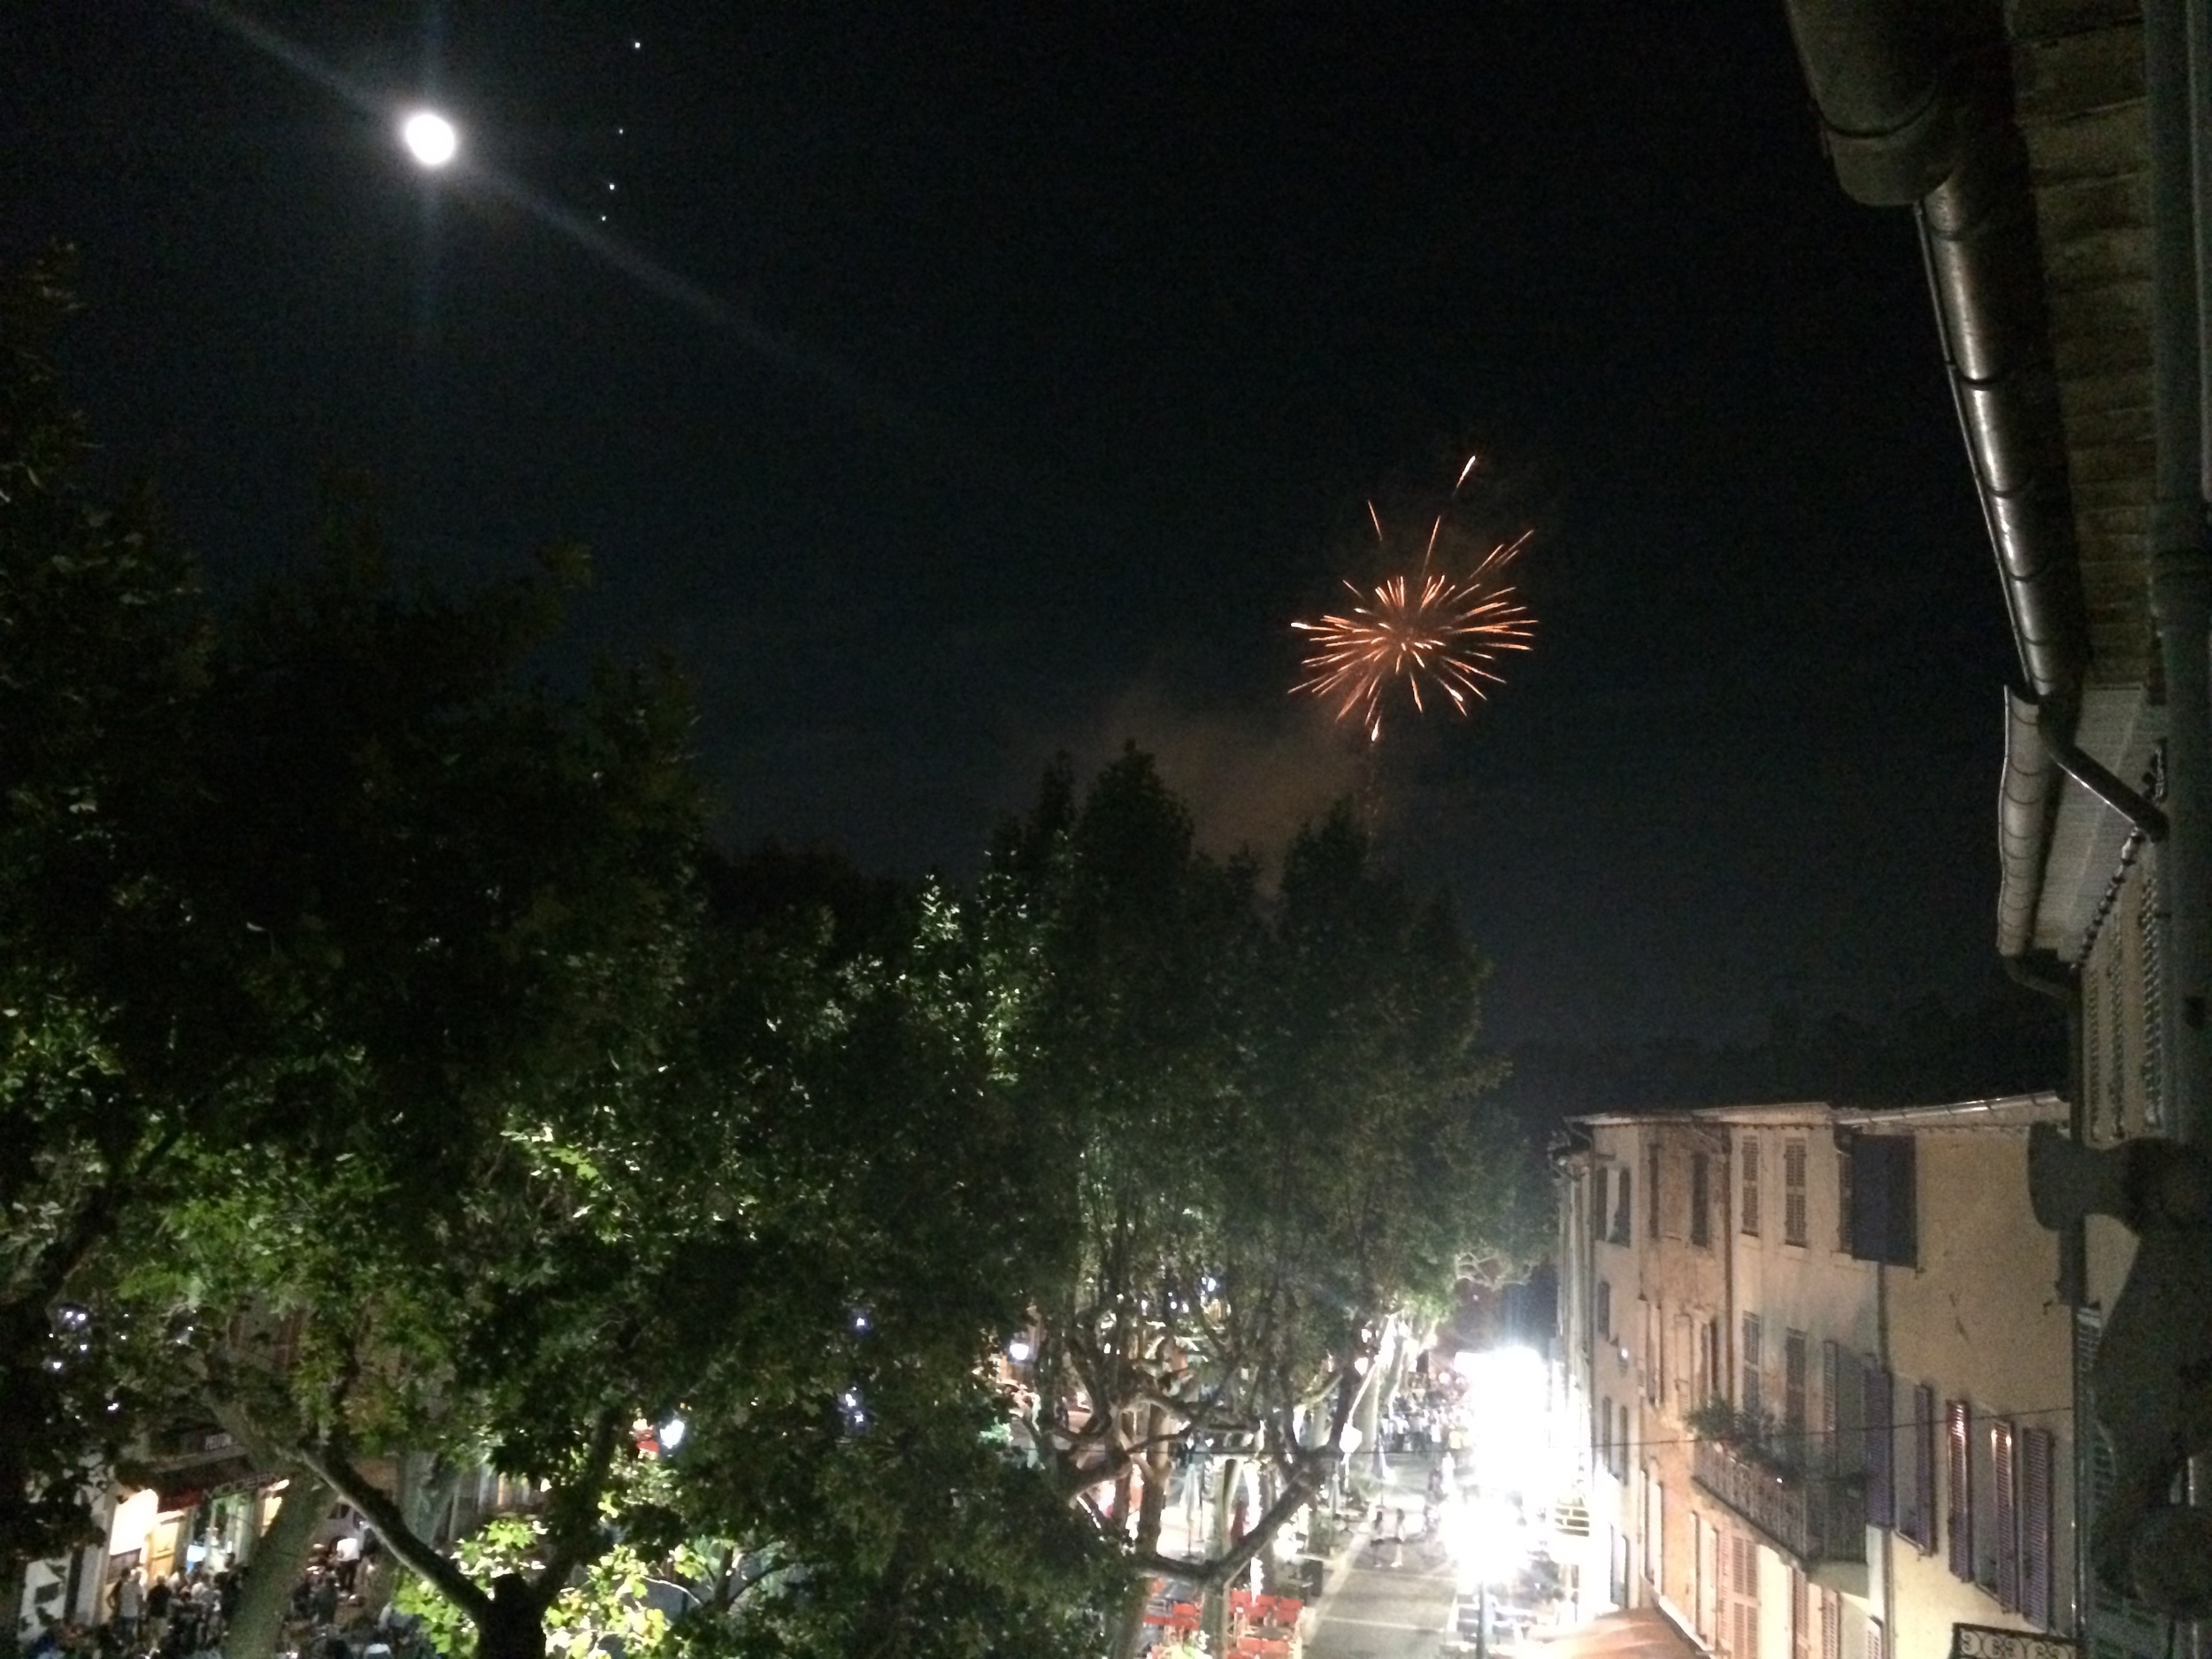 The finale of the Rock Concert - from my window.